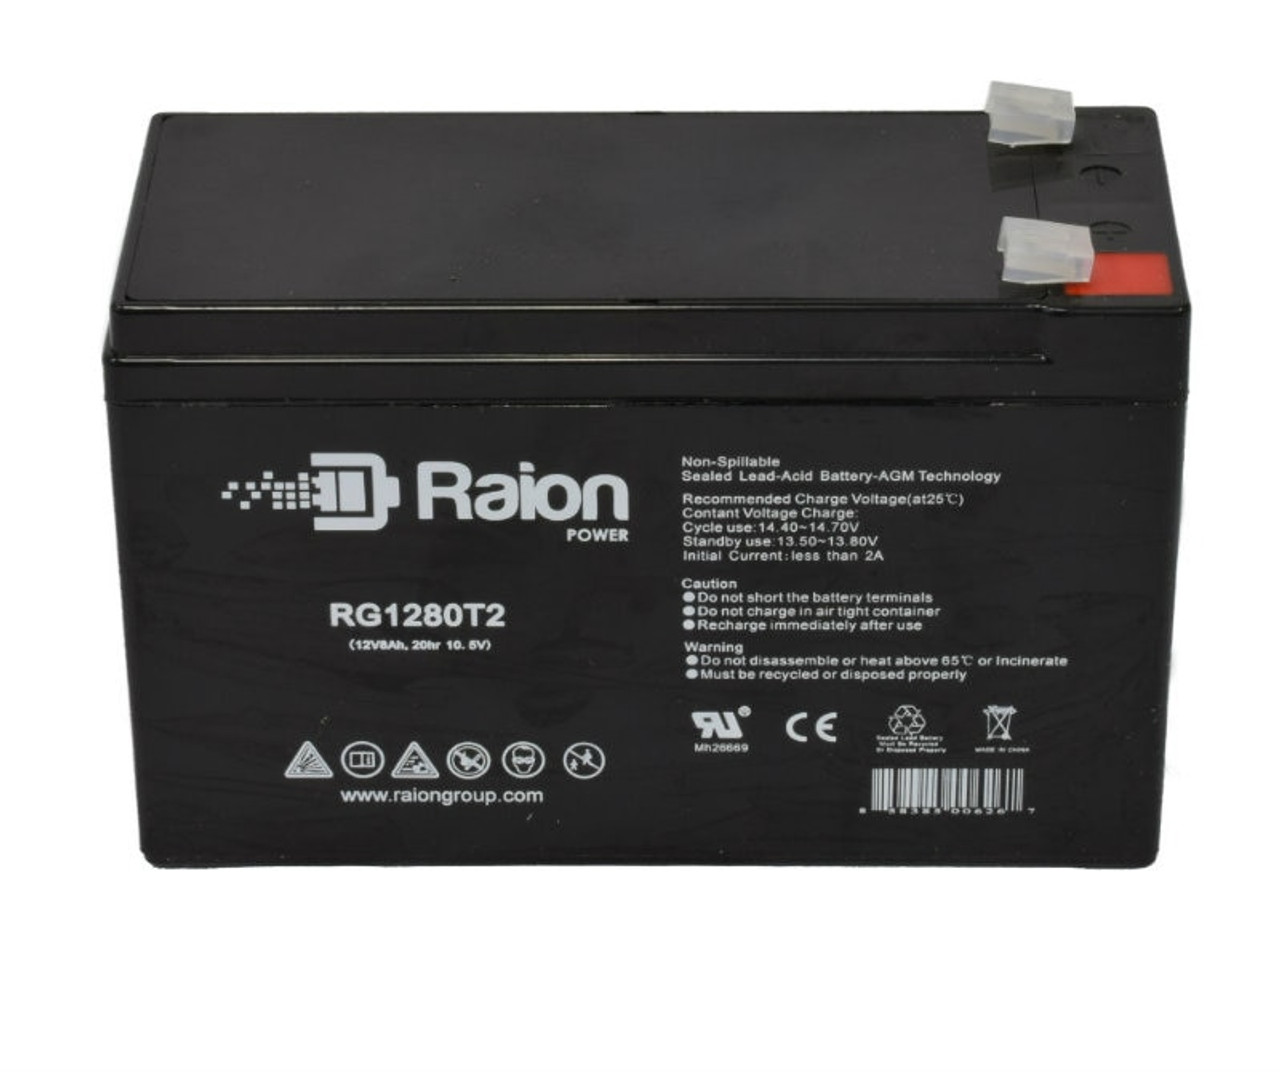 Raion Power RG1280T2 12V 8Ah Sealed Lead Acid Battery With T2 Terminals